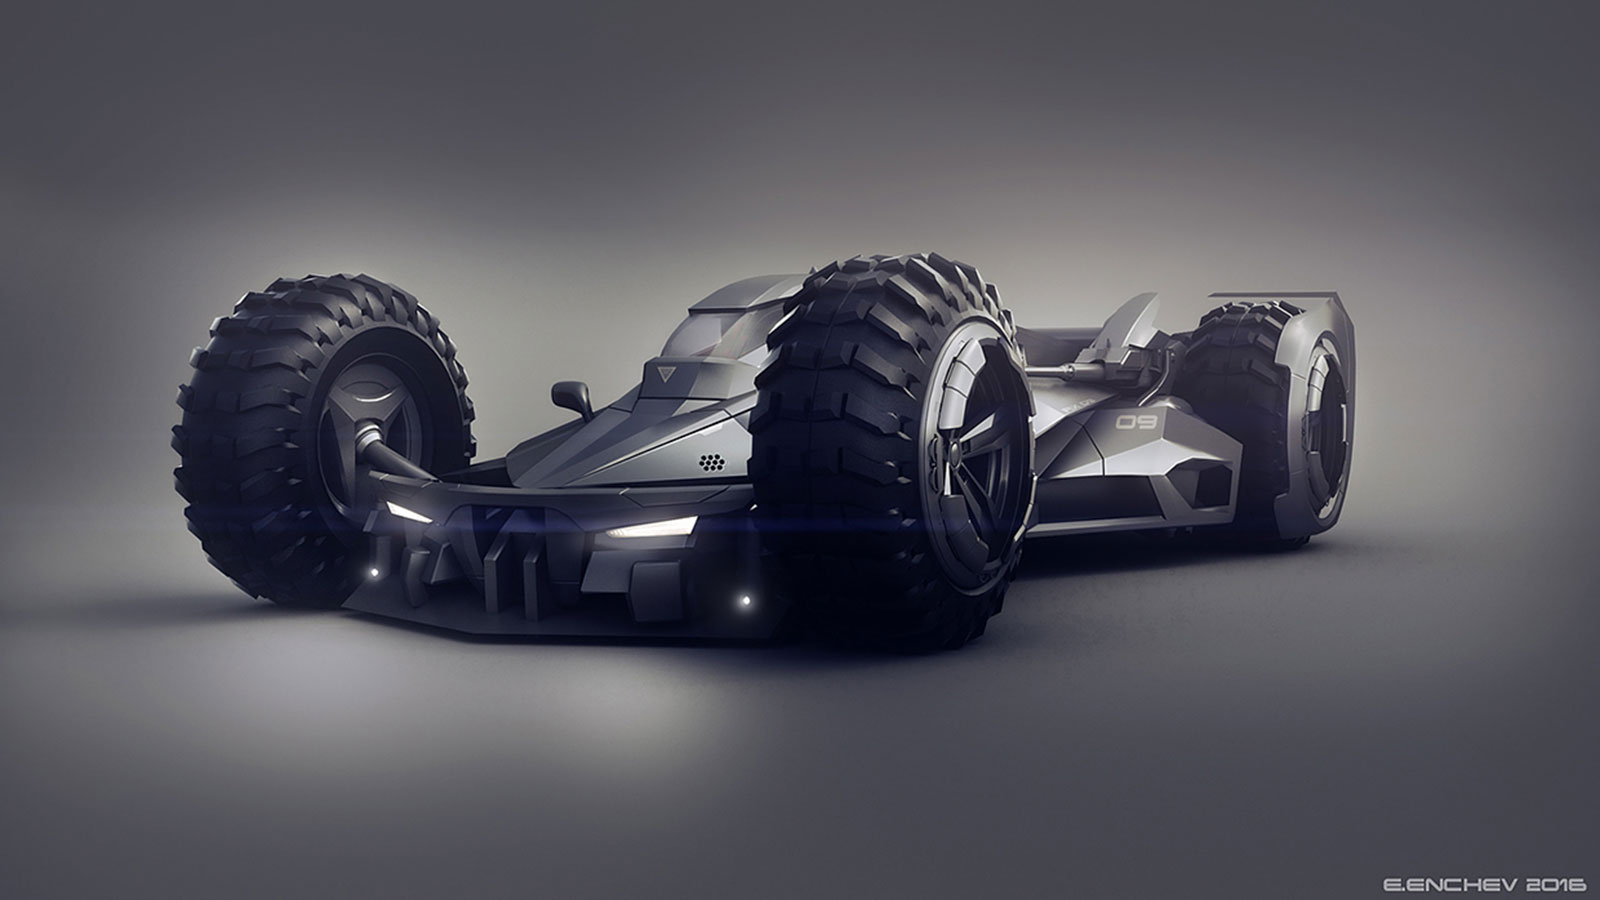 Batmobile-Concept-By-Encho-Enchev-1